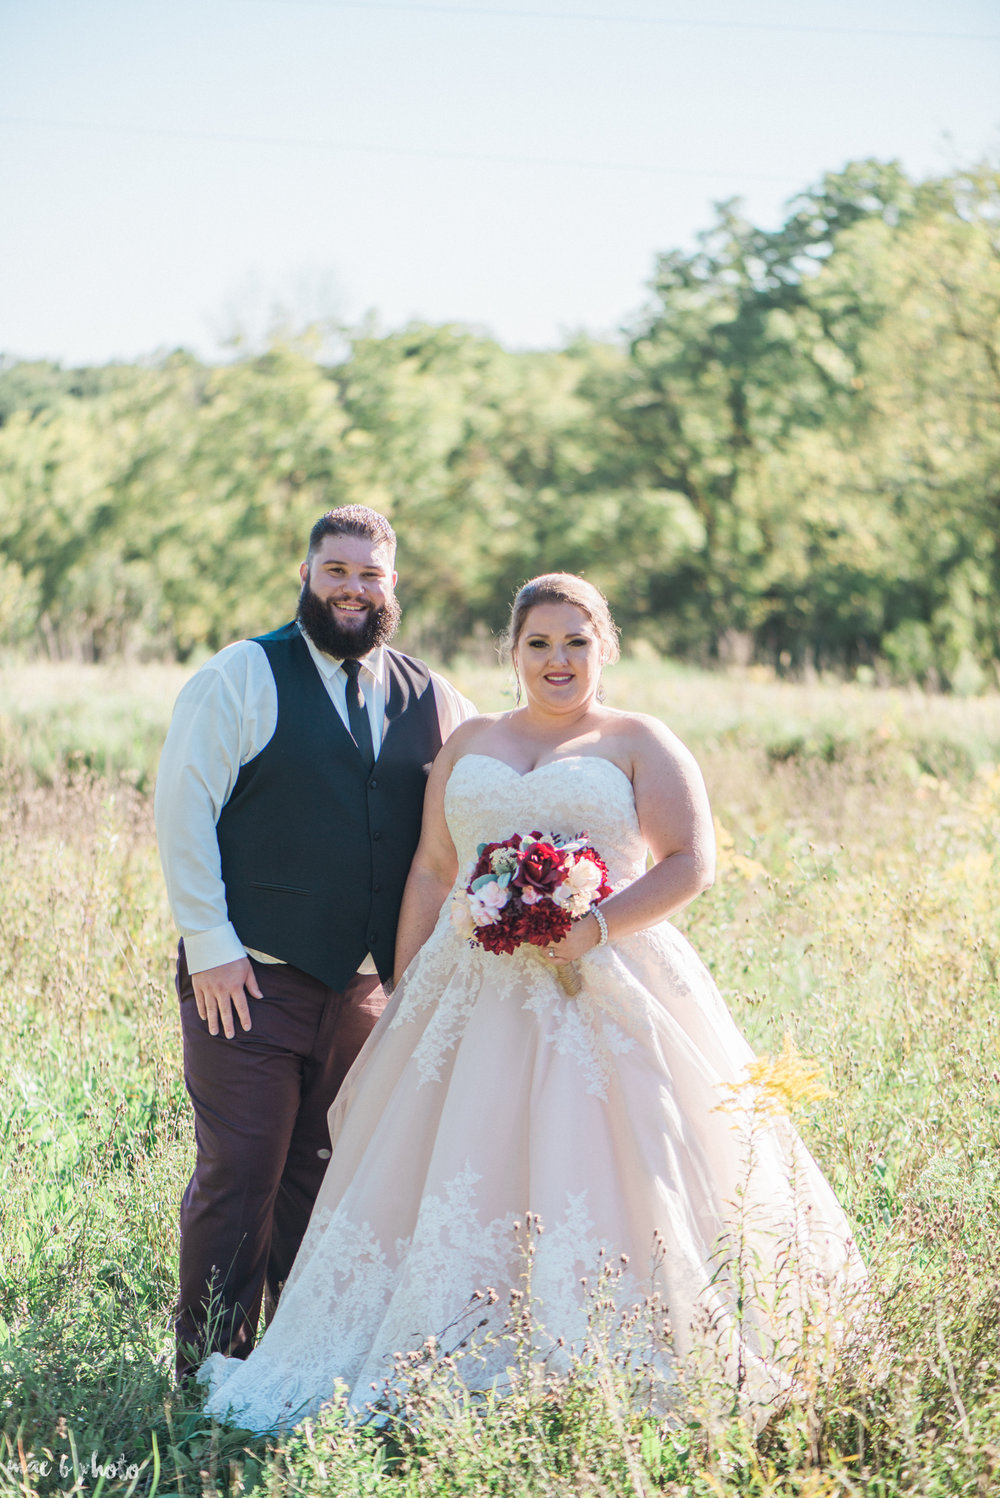 Amber & Kyle's Rustic Barn Wedding at SNPJ in Enon Valley, PA by Mae B Photo-71.jpg